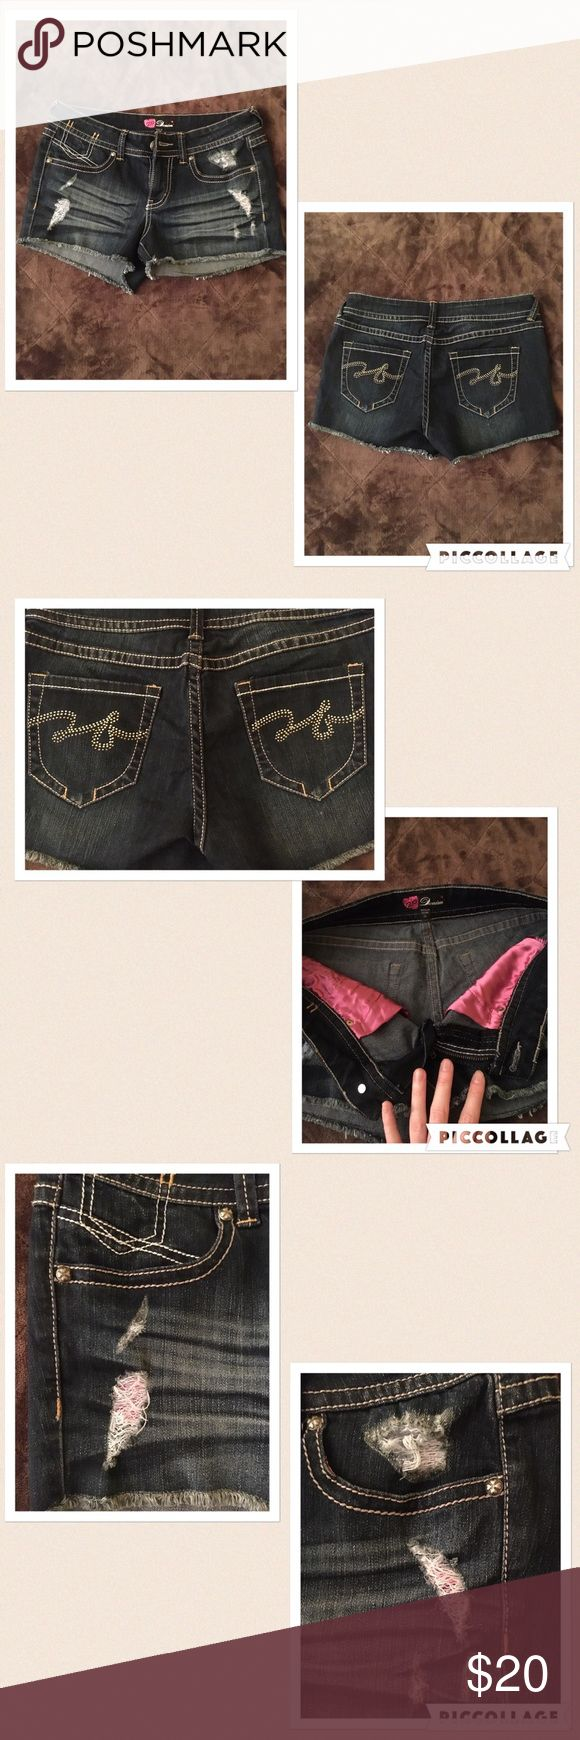 2b Bebe shorts! Adorable shorts! Barely worn destroyed cutoffs. Has pink silky pockets. Only flaws (shown in the last pic) are that on the left pocket there is 1 jewel missing, on the right pocket there's either 2 or 3 jewels missing. I used an arrow to point to where the missing jewels are. It's honestly barely noticeable though!! 2b Bebe Shorts Jean Shorts